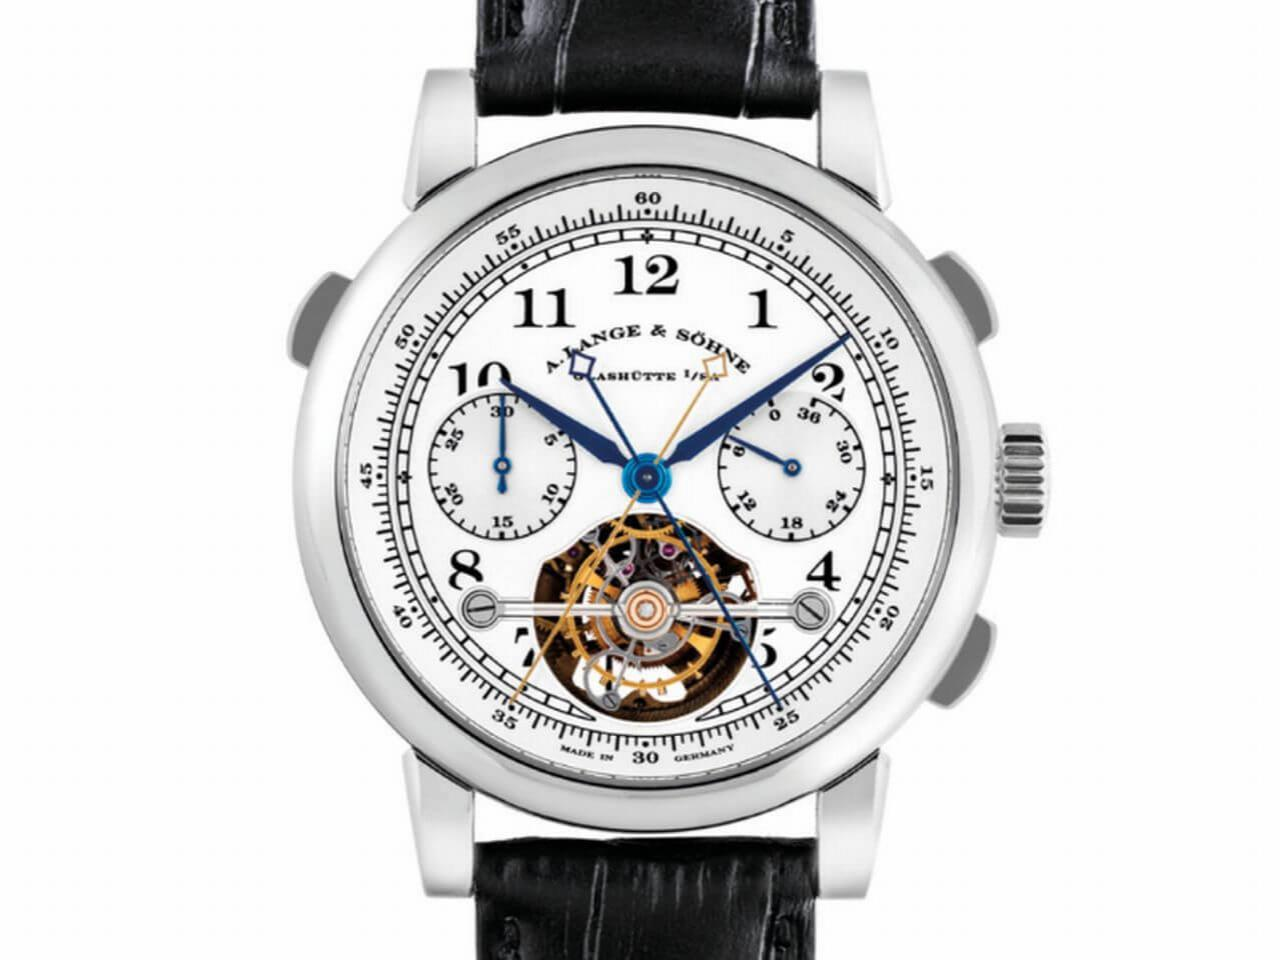 A. LANGE & SÖHNE. AN EXTREMELY FINE, VERY RARE AND IMPRESSIVE PLATINUM LIMITED EDITION SPLIT SECONDS CHRONOGRAPH TOURBILLON